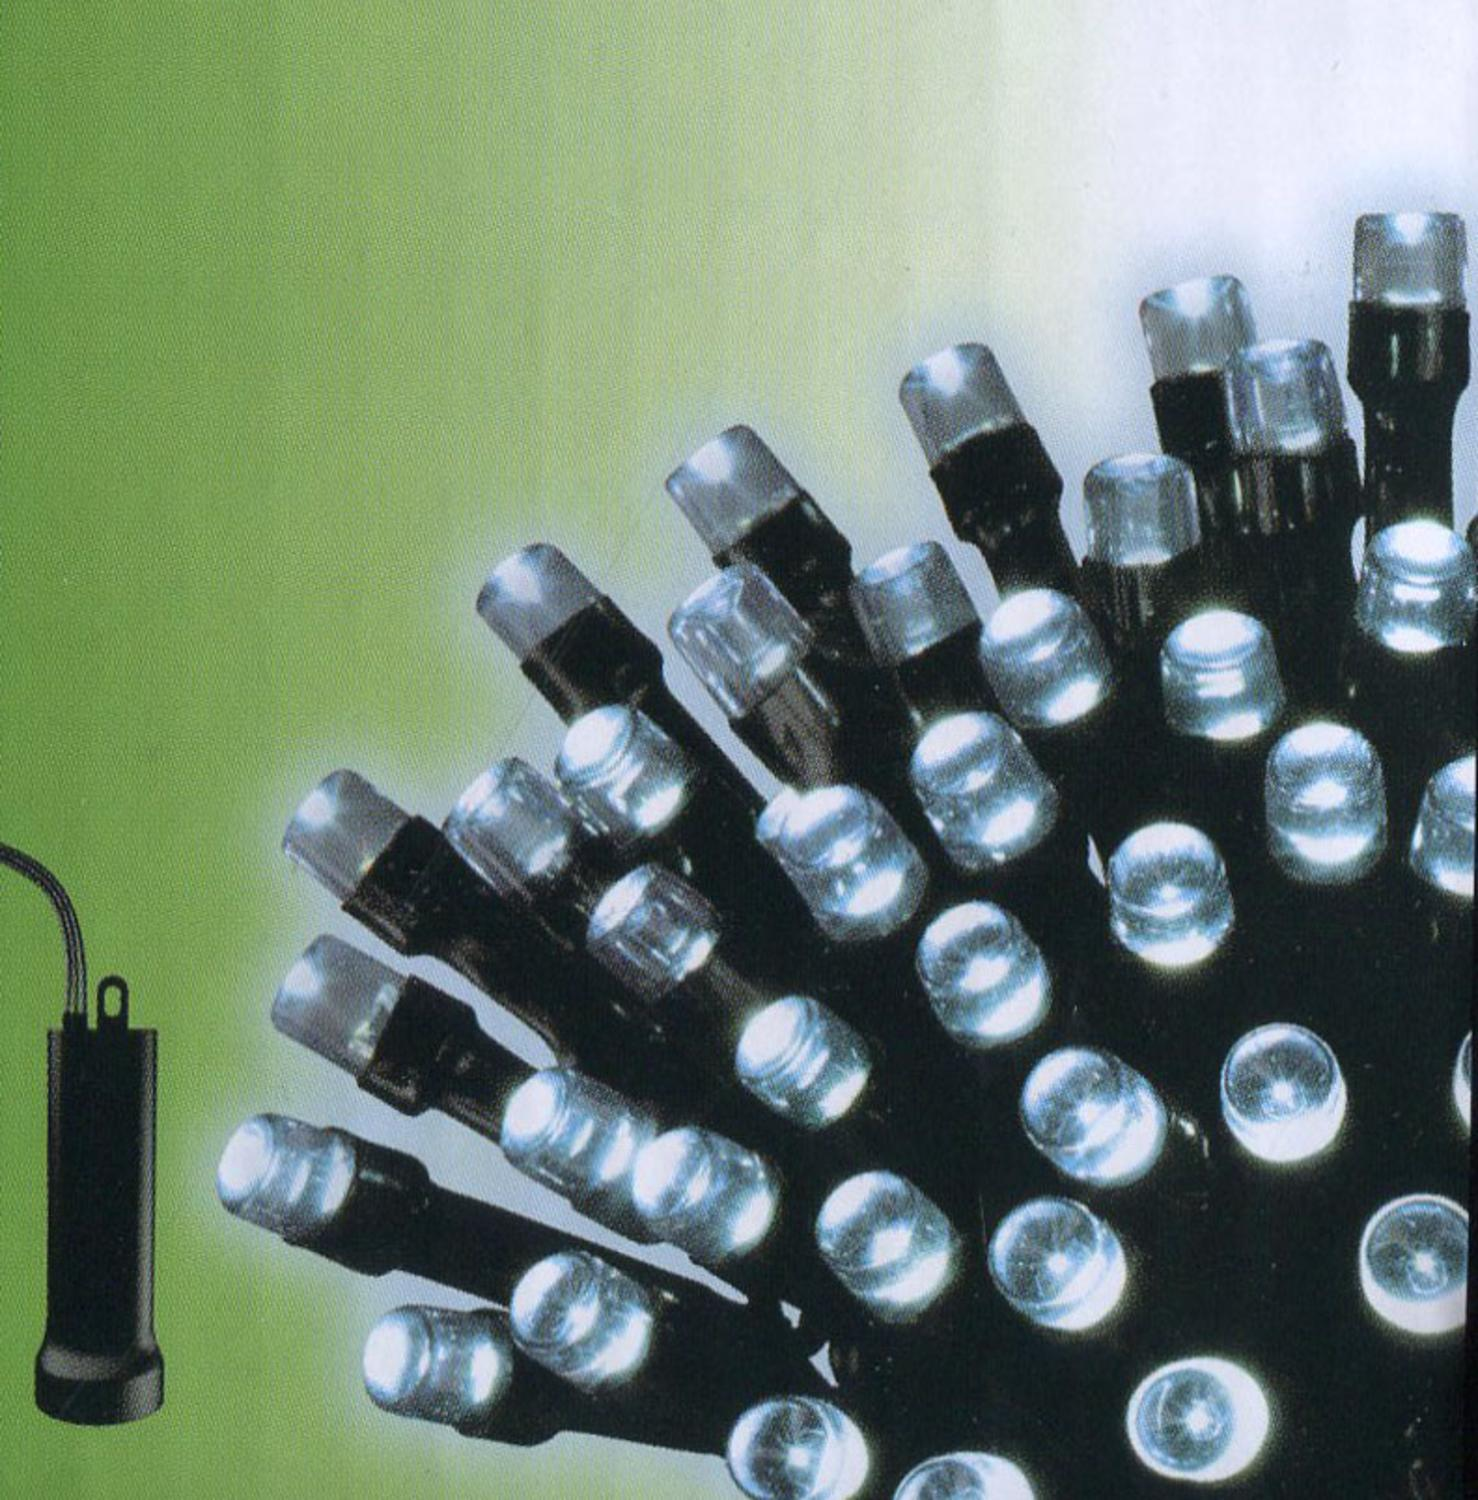 Set of 96 Cool White LED Battery Operated 8-Function Christmas Lights - Black Wire